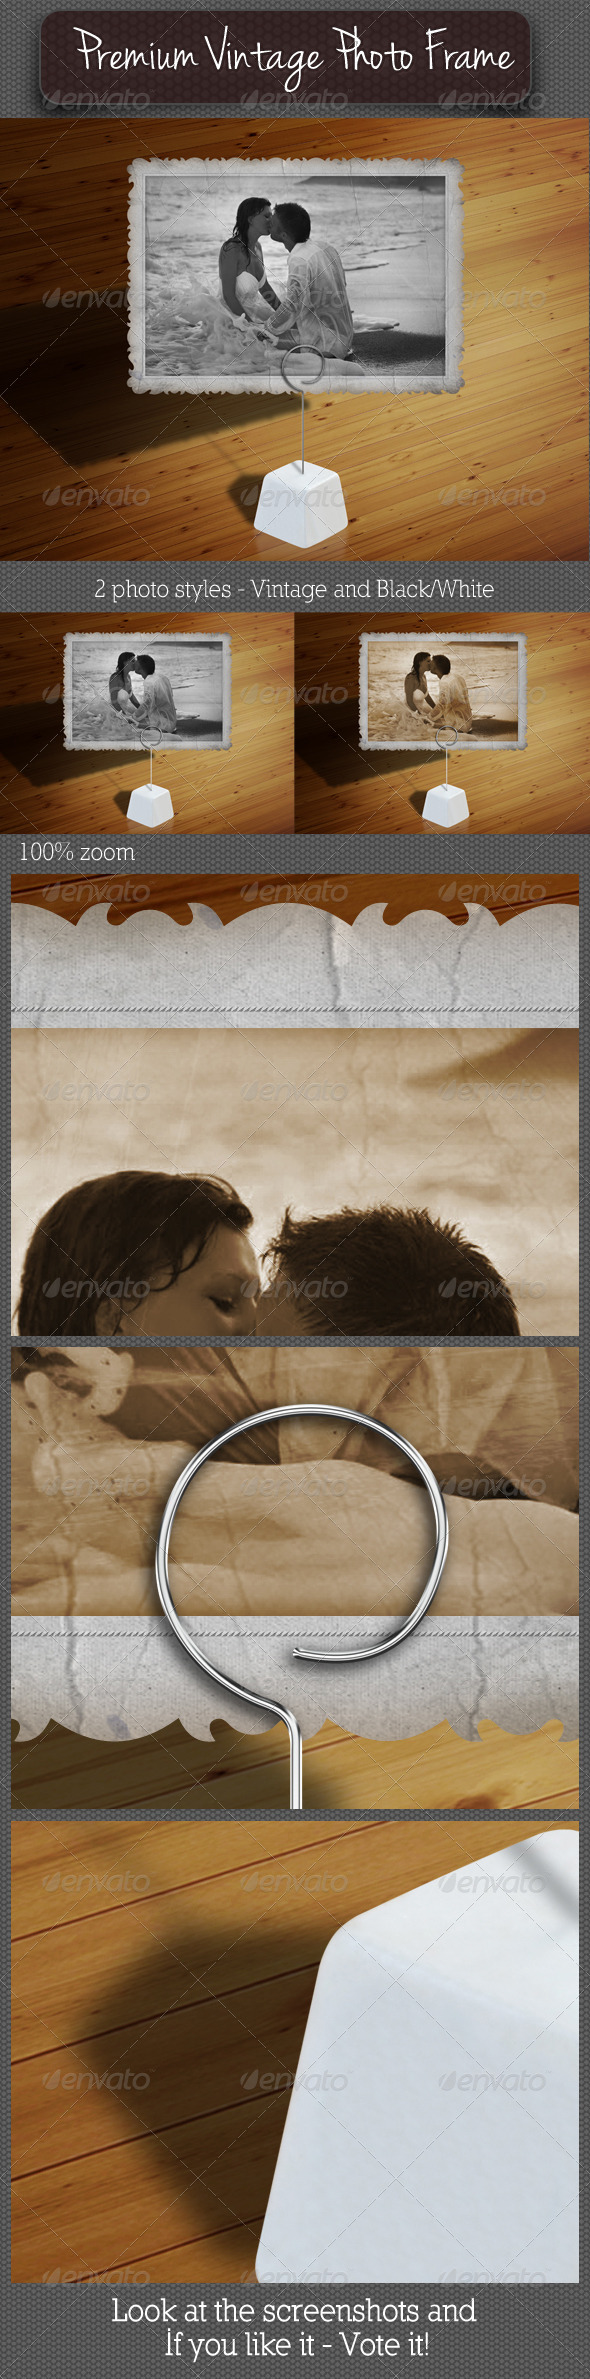 GraphicRiver Premium Vintage Photo Frame 02 5939135